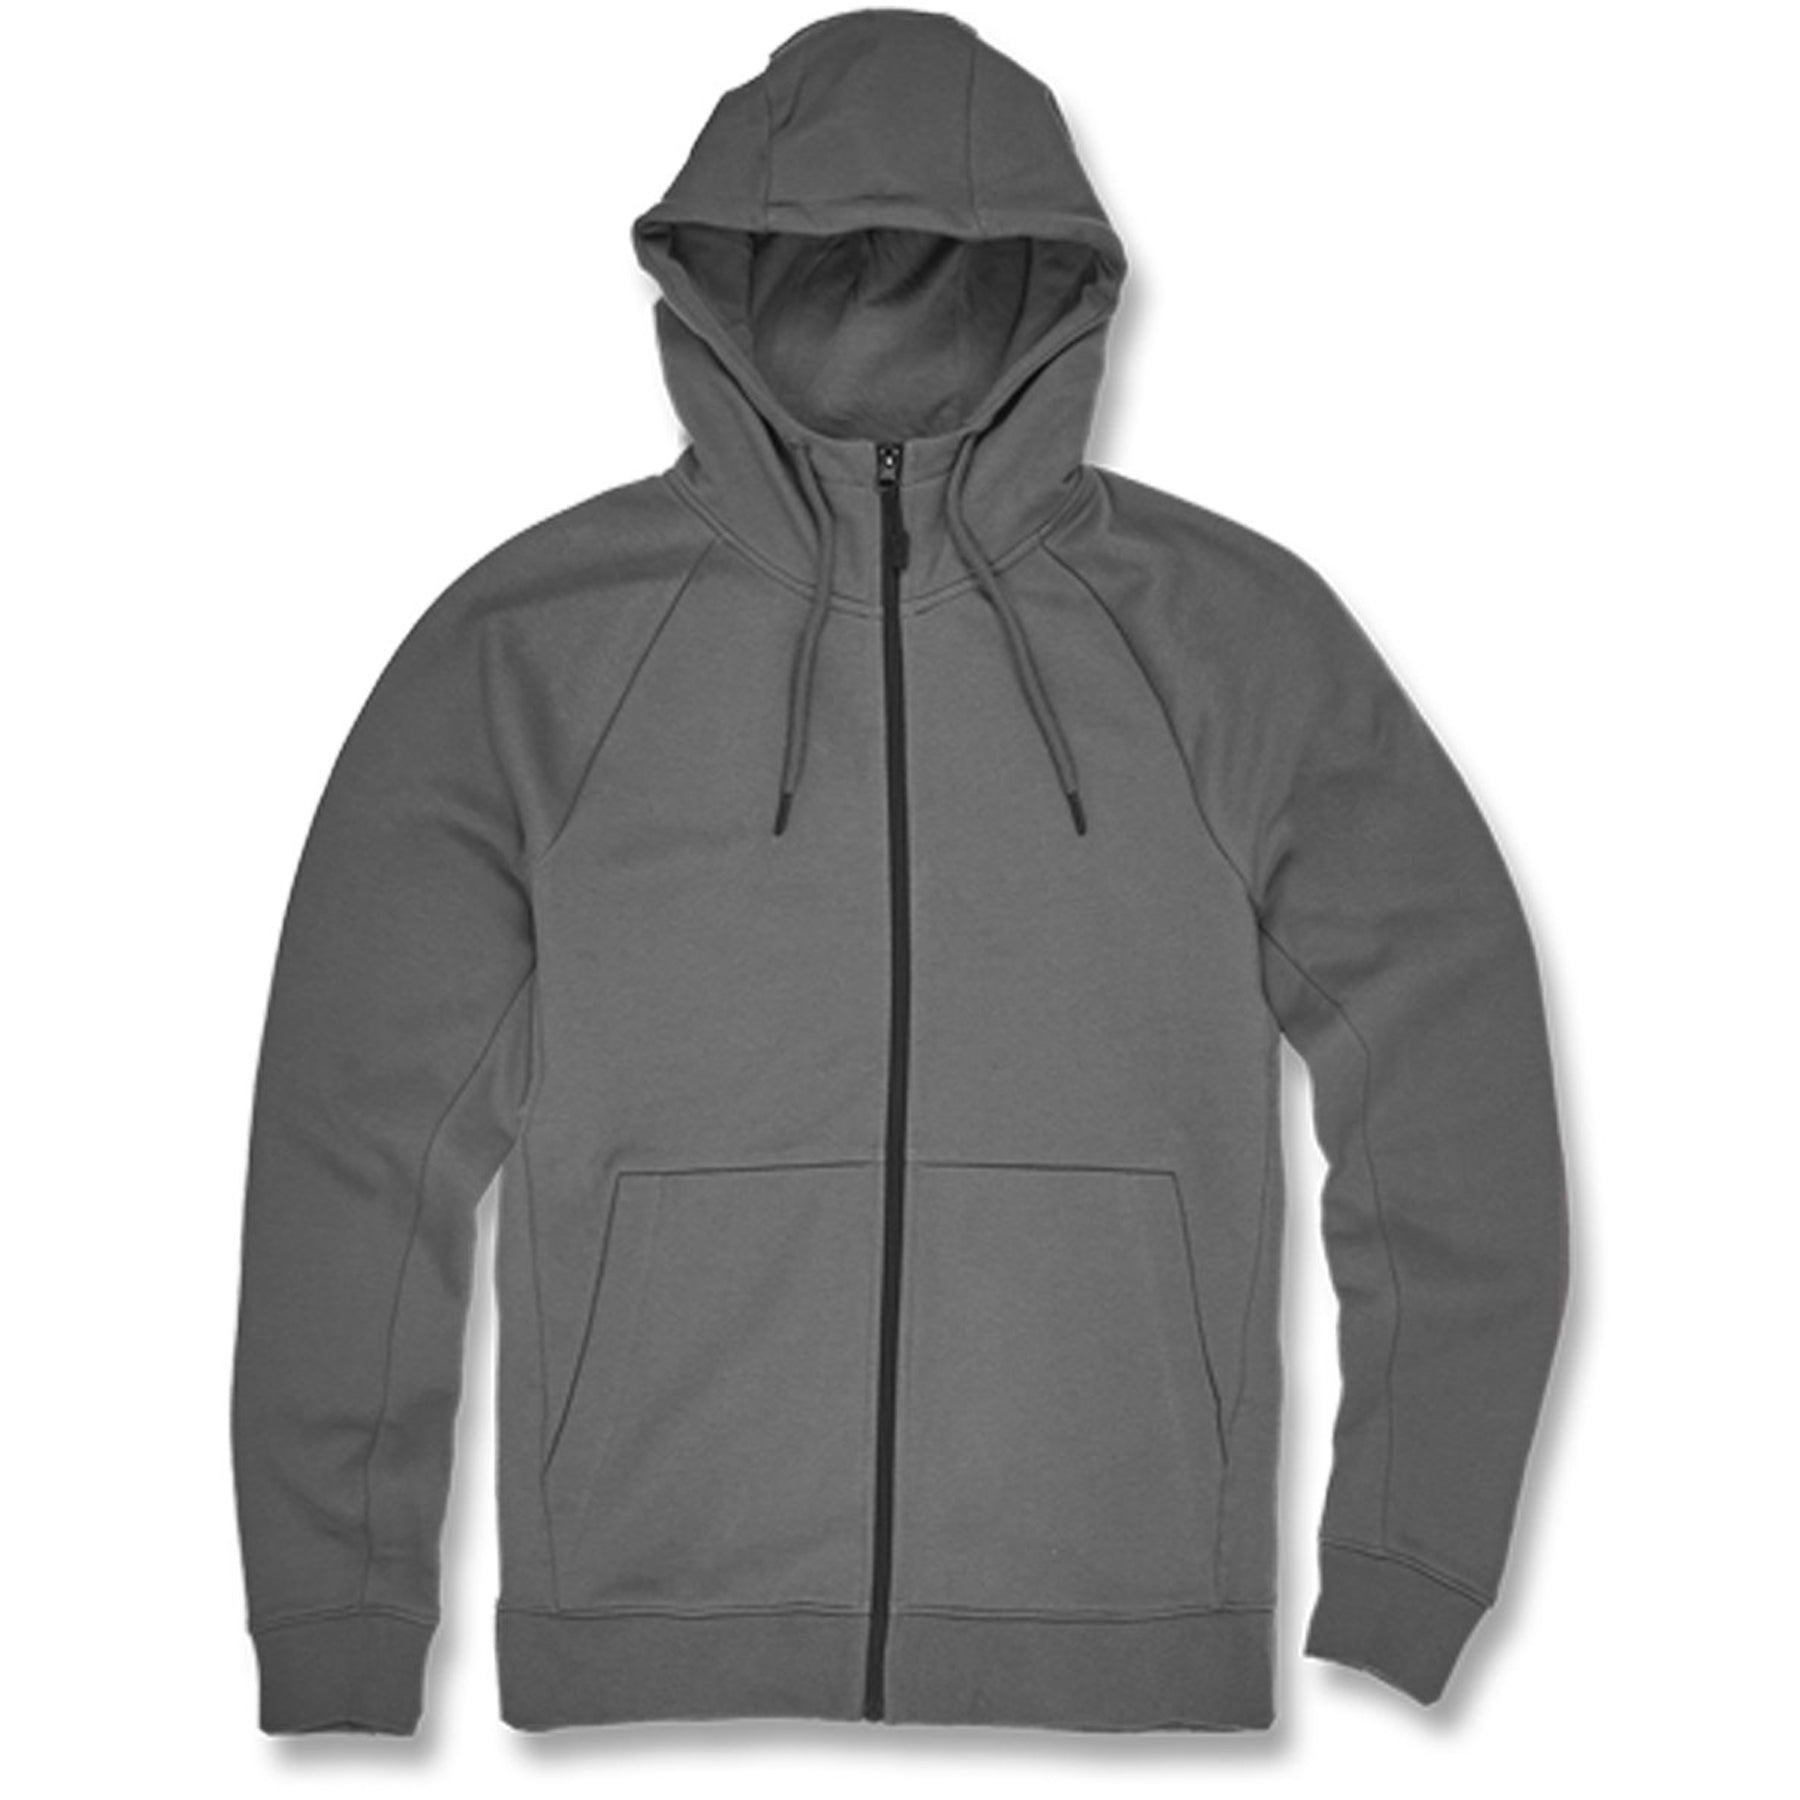 ed9913db The gray charcoal zip up hoodie from Jordan craig is solid gray with a black  zipper